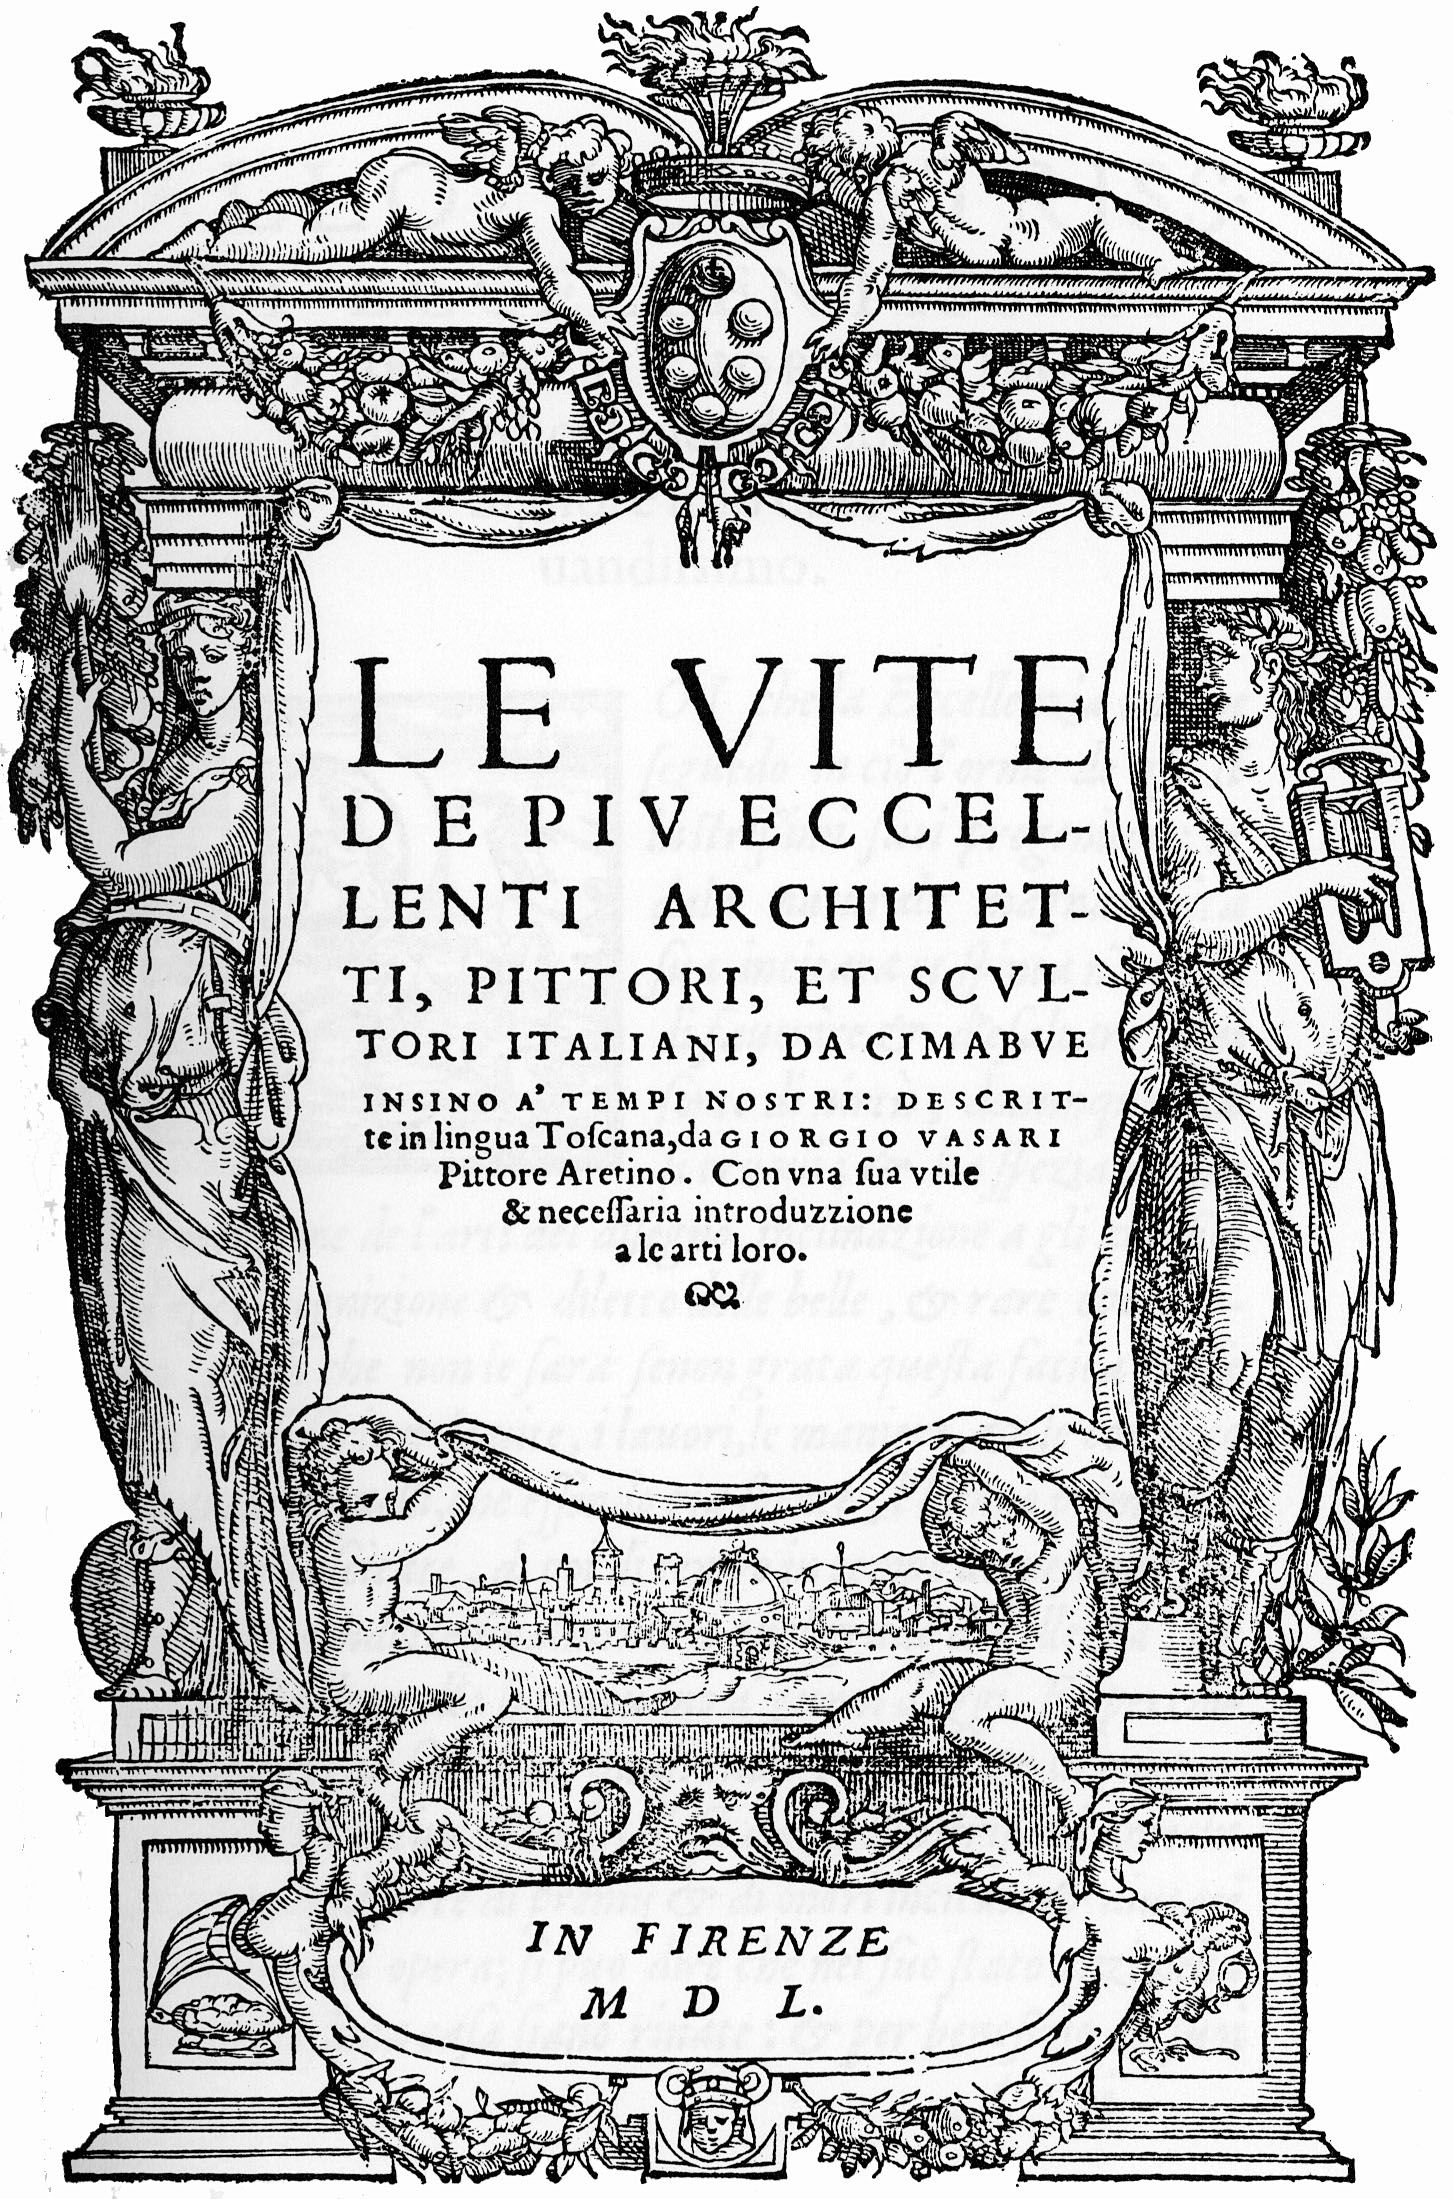 Vasari's Lives of the most Eminent Painters, Architects, Sculptors.